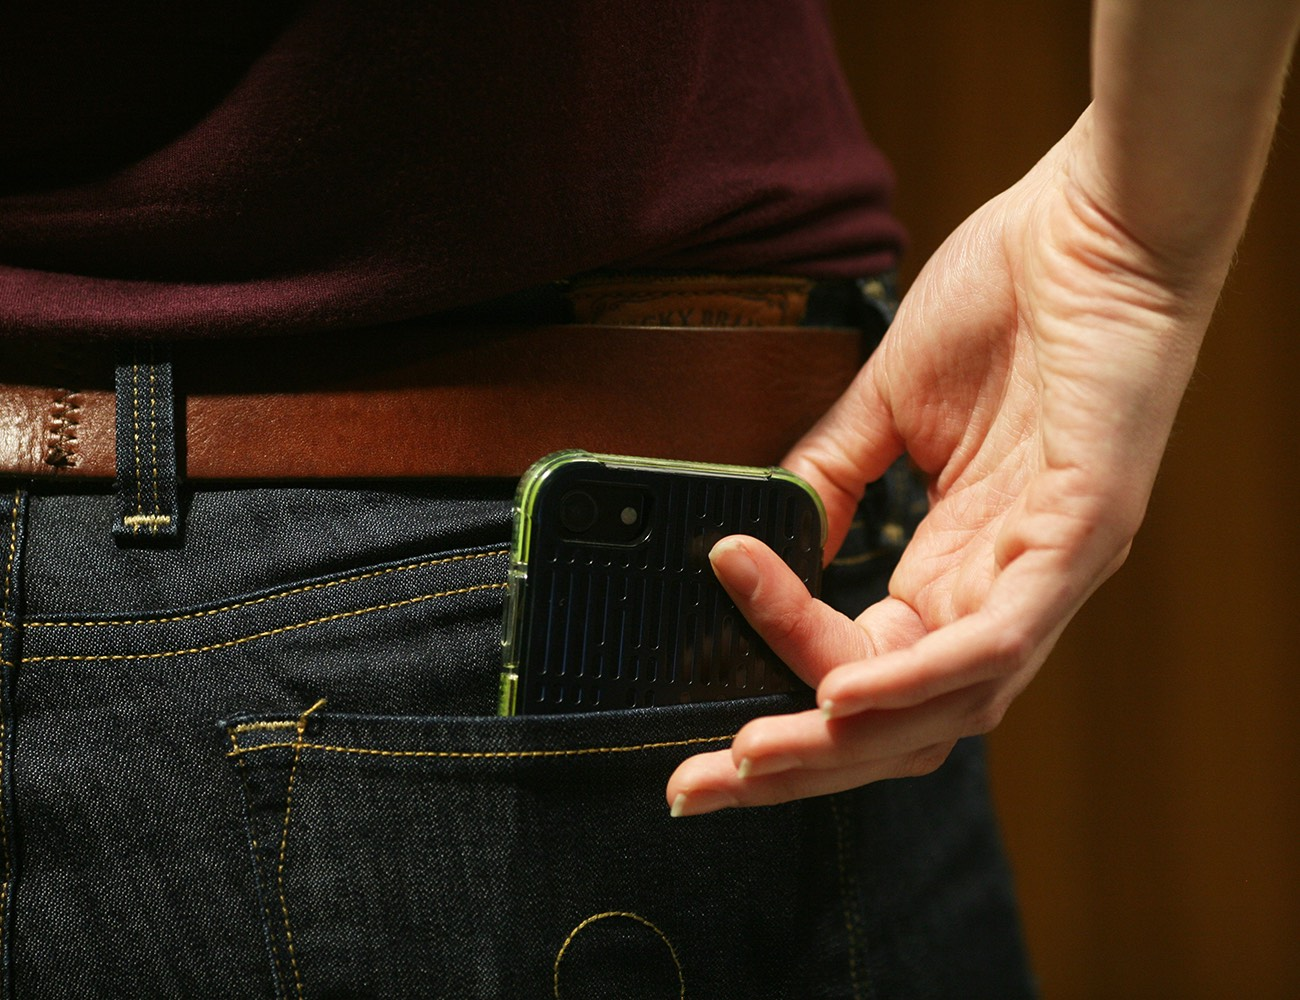 Firefly Super Antenna iPhone Case